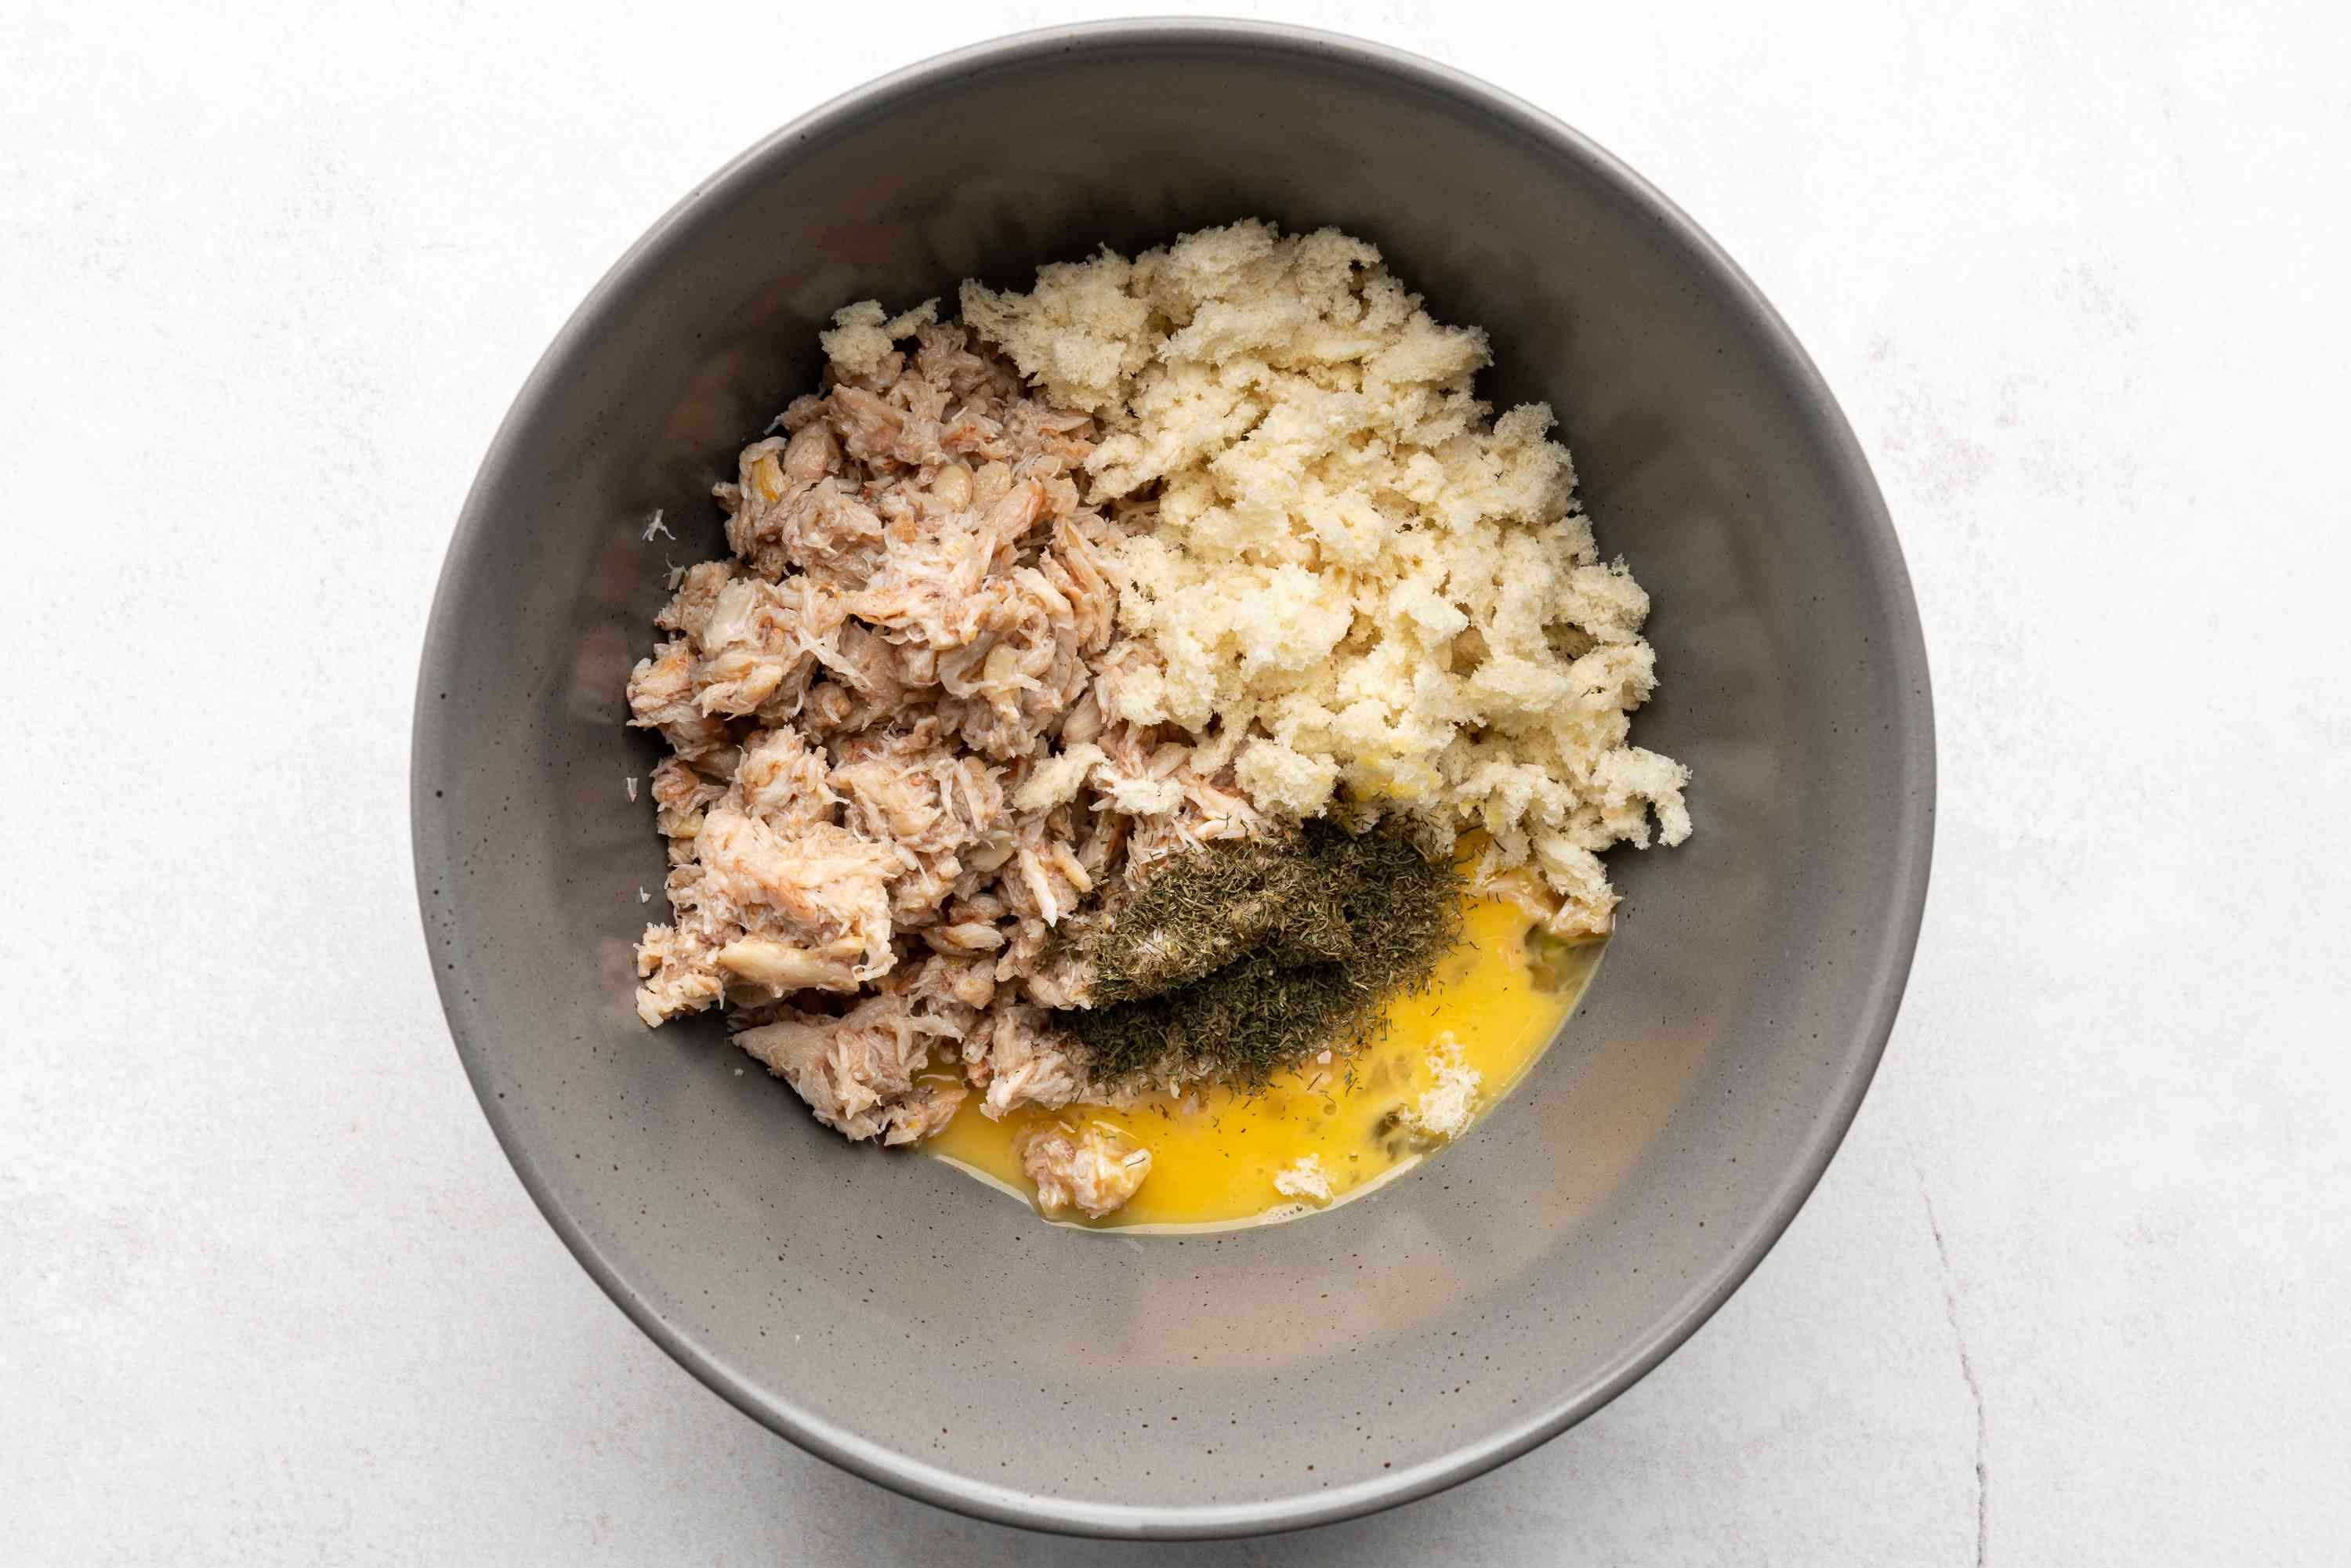 lemon juice, crab meat, breadcrumbs, egg, and dill to the bowl